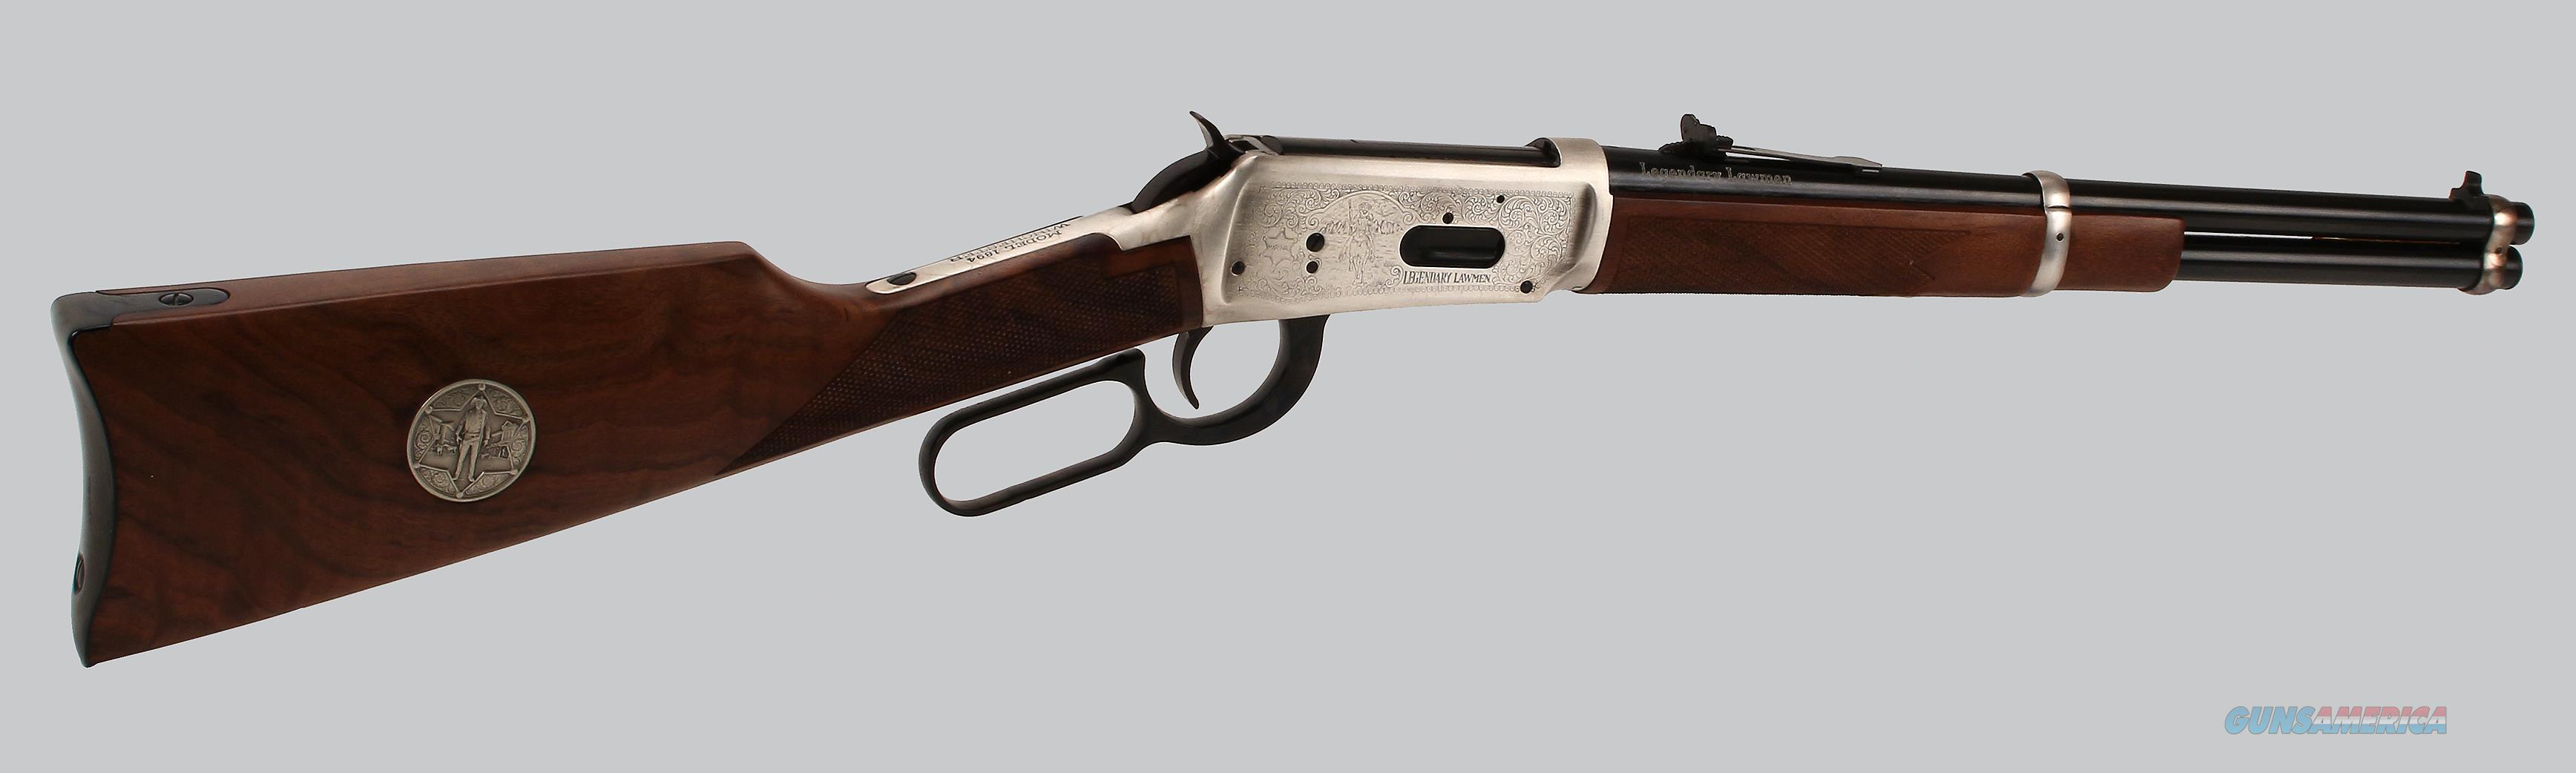 Winchester 30-30 Legendary Lawman Lever Action Rifle  Guns > Rifles > Winchester Rifle Commemoratives